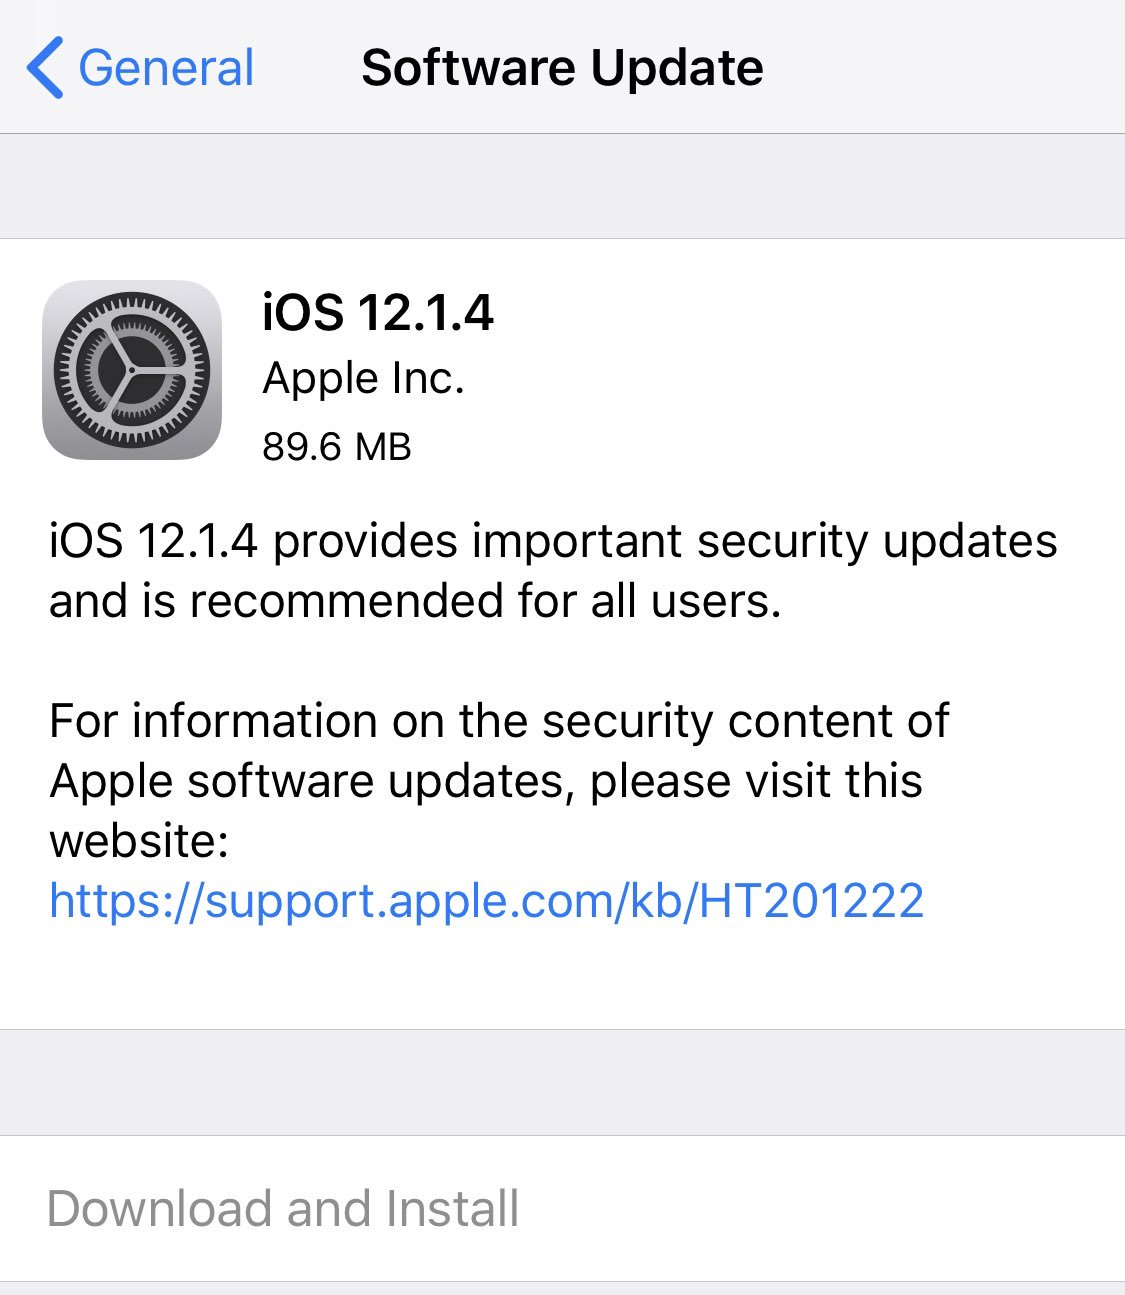 Apple has released iOS 12.1.4 with #Facetime Group Video Calling bug fix. #iPhone #iPad #iOS1214 #Security https://t.co/9KQuGxDRPR